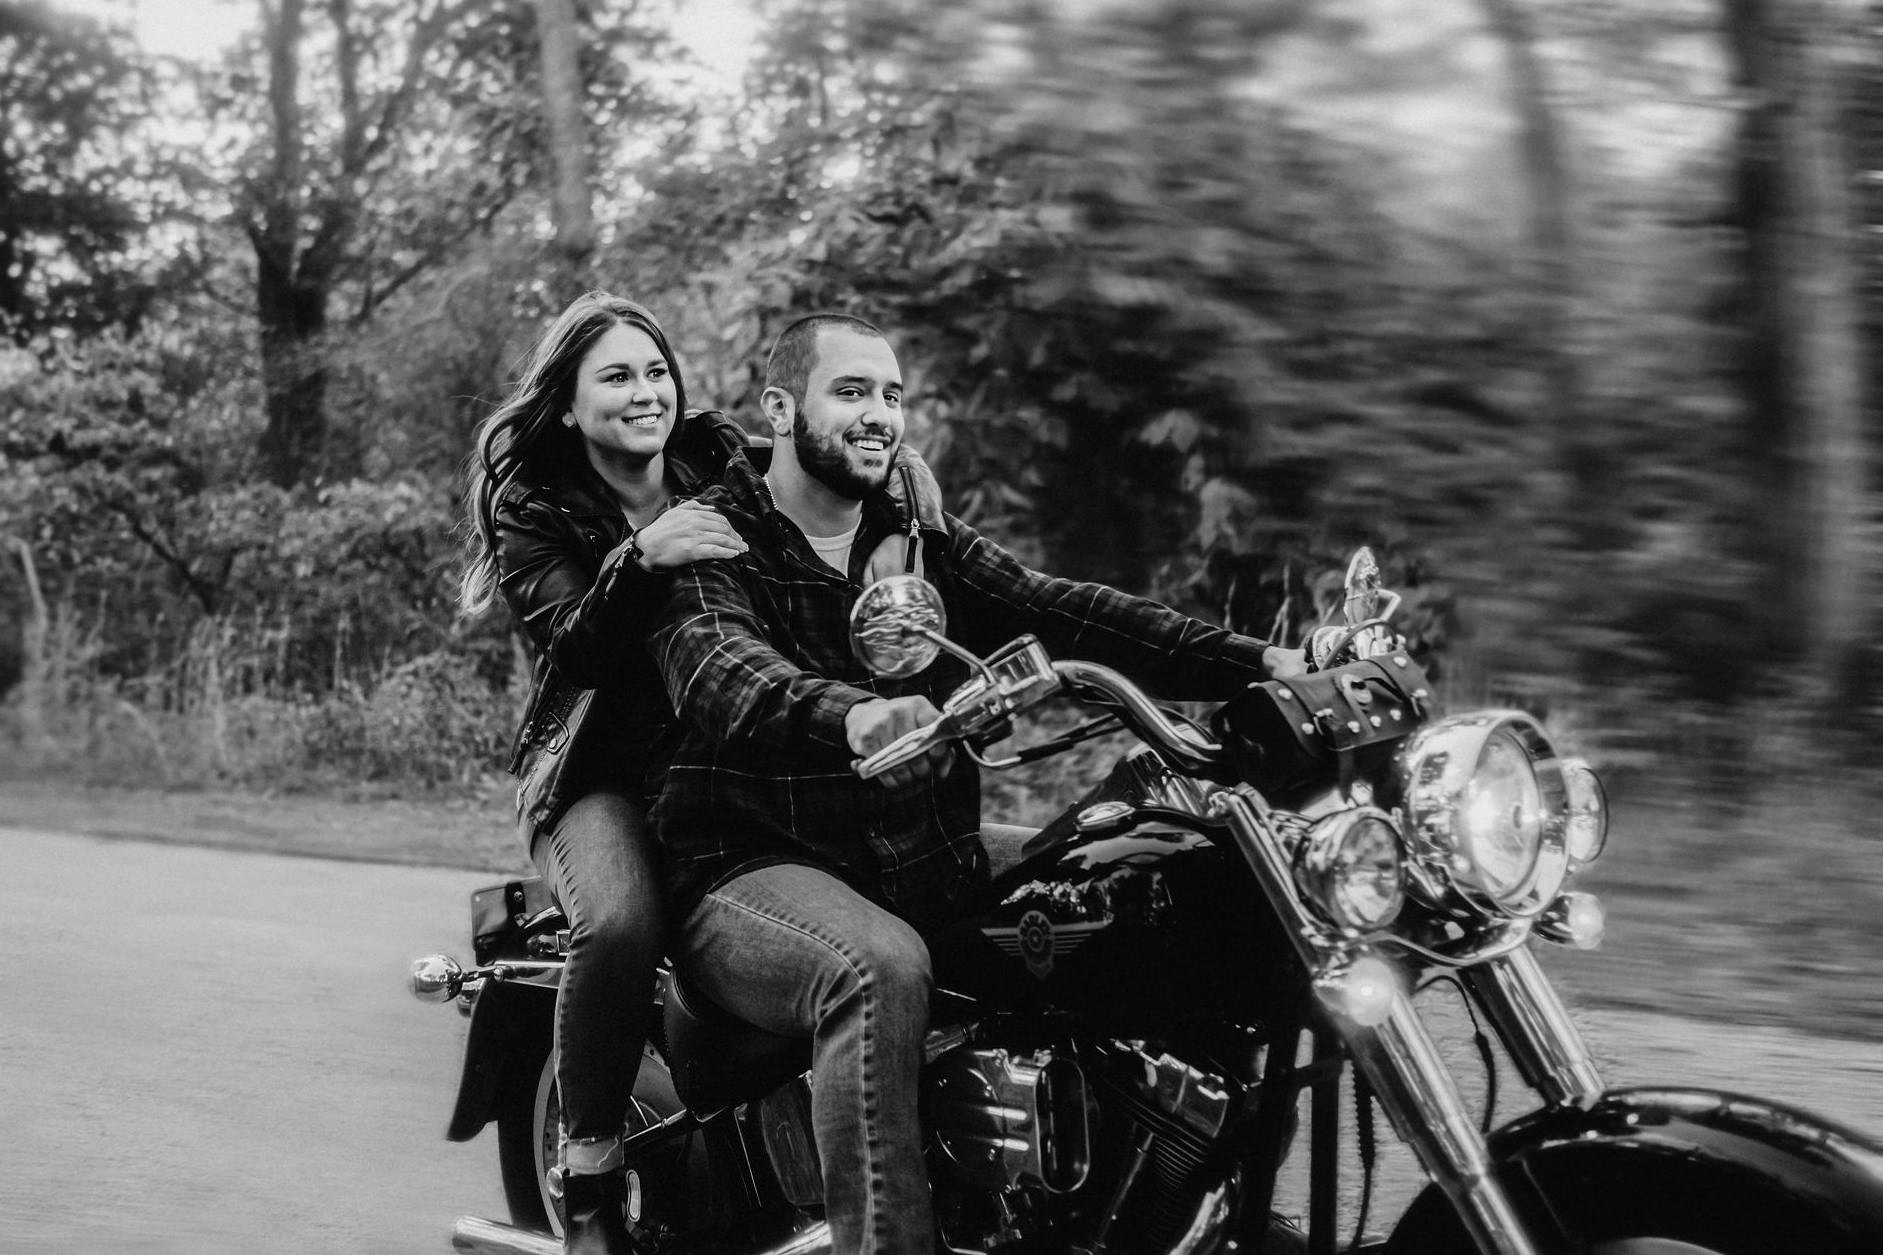 New Jersey Motorcycle engagement shoot